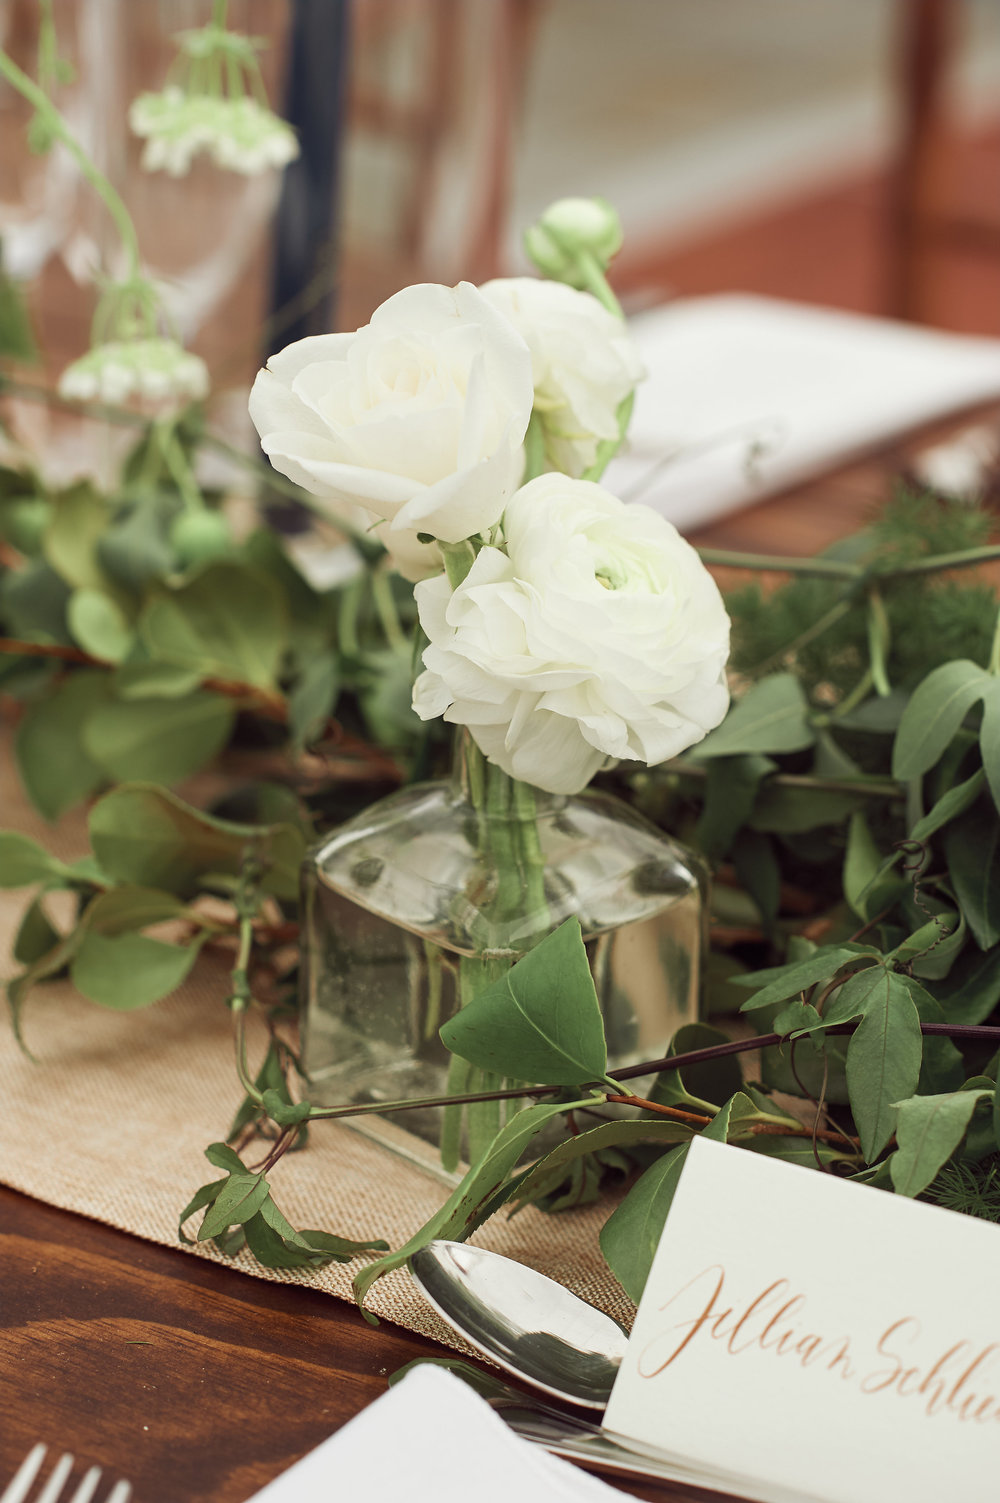 bud vases and custom seating card